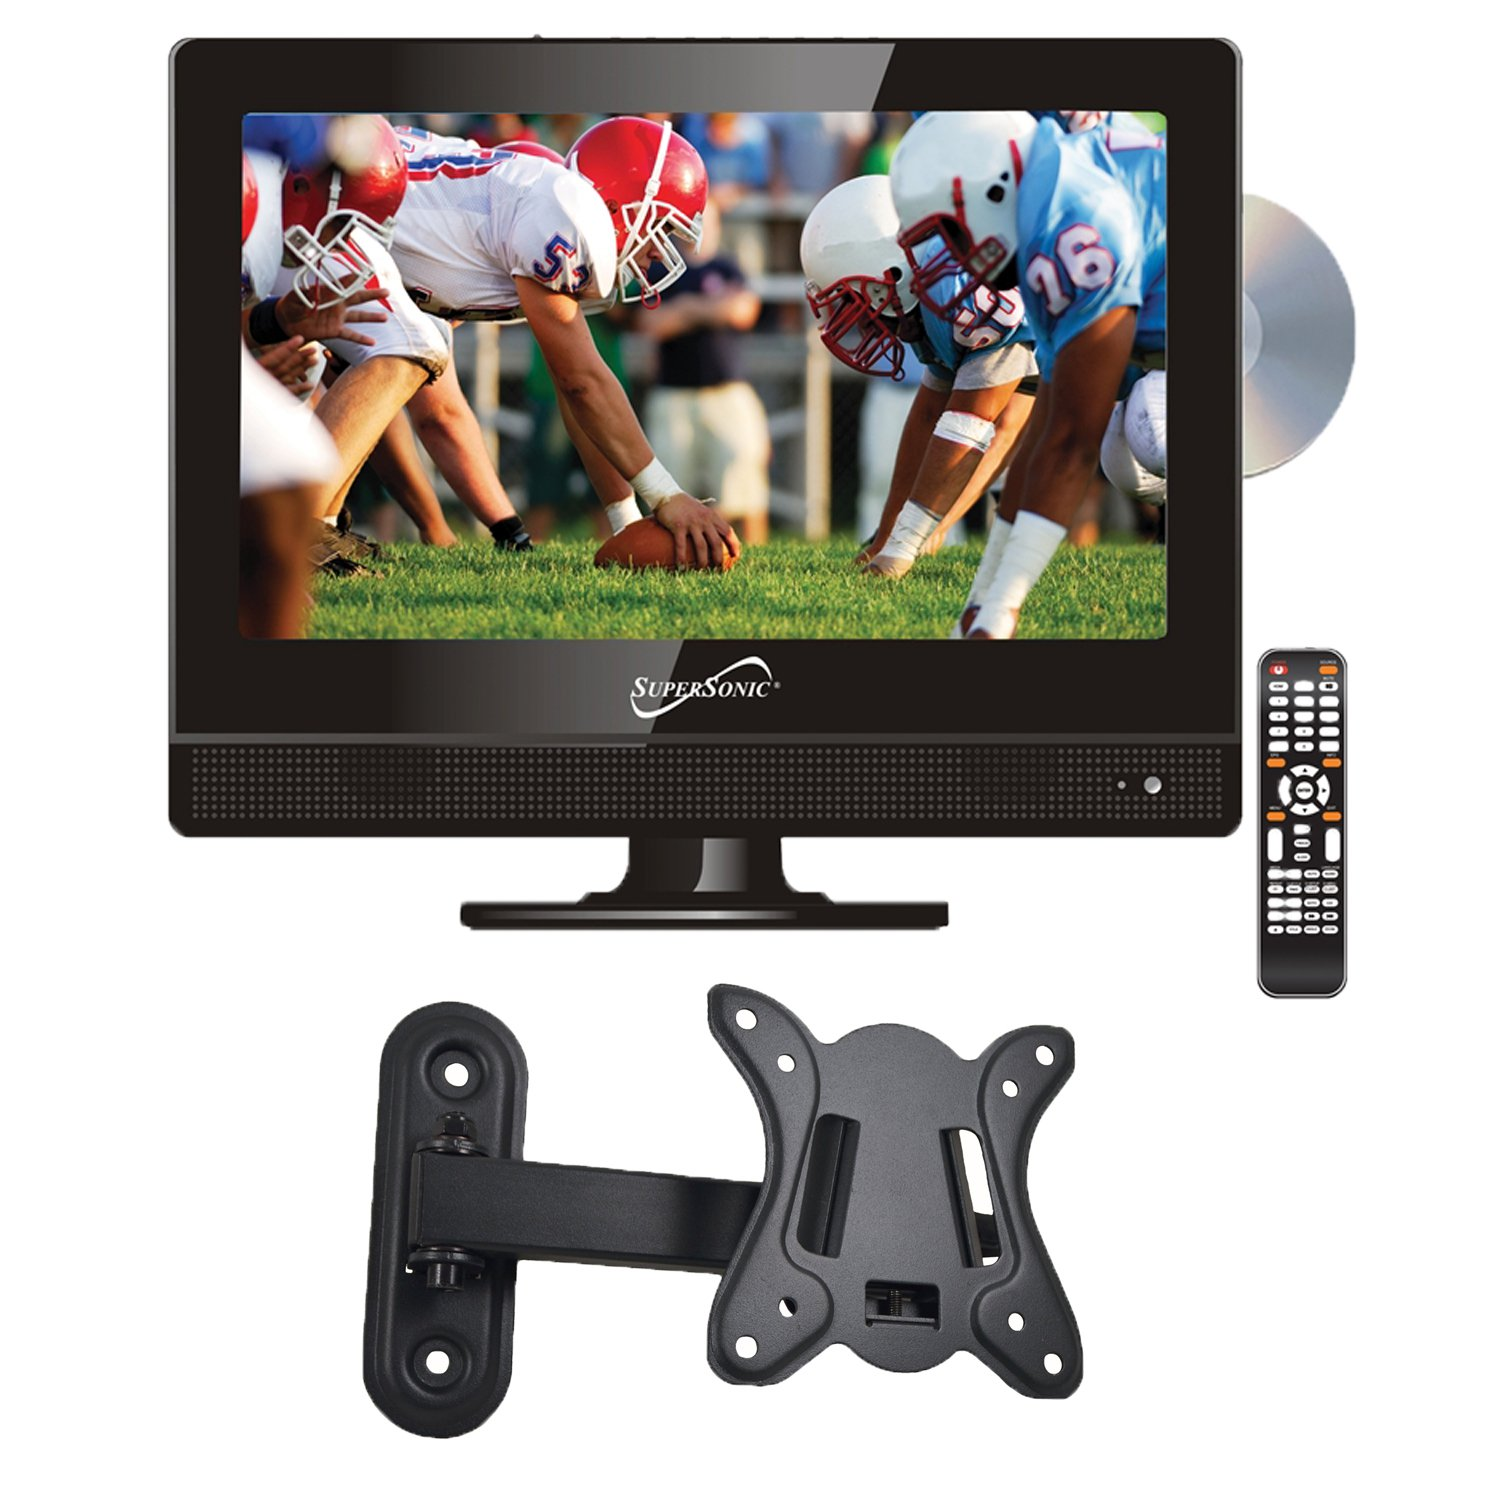 Supersonic SC-1312 13.3'' LED Widescreen HDTV with DVD Player and Wall Mount